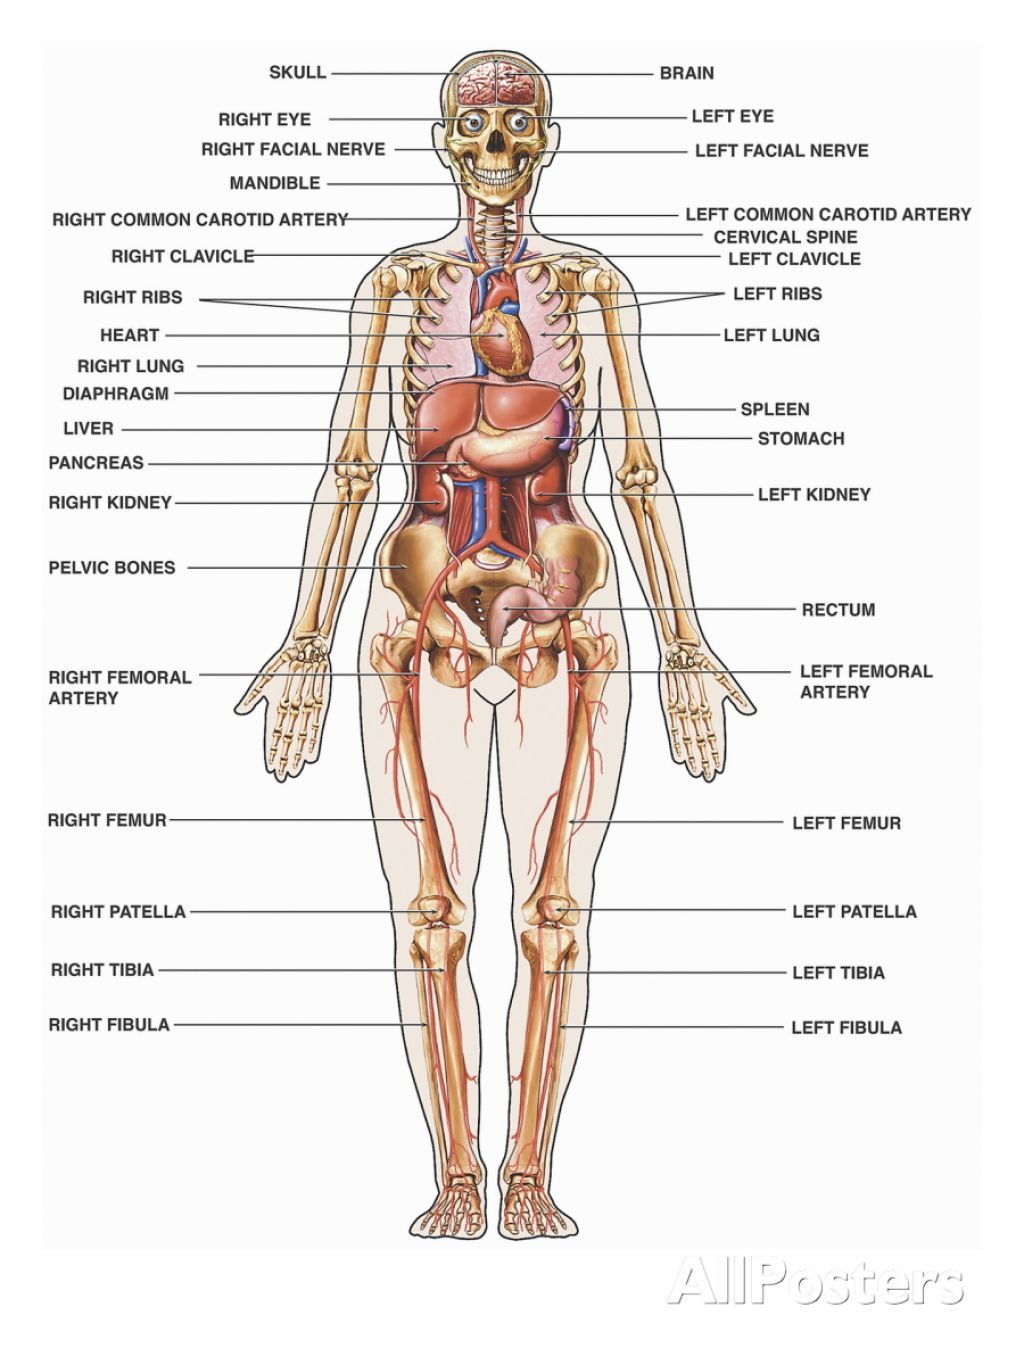 Human Body Parts Labeled Anatomy Human Body Parts Mell 1